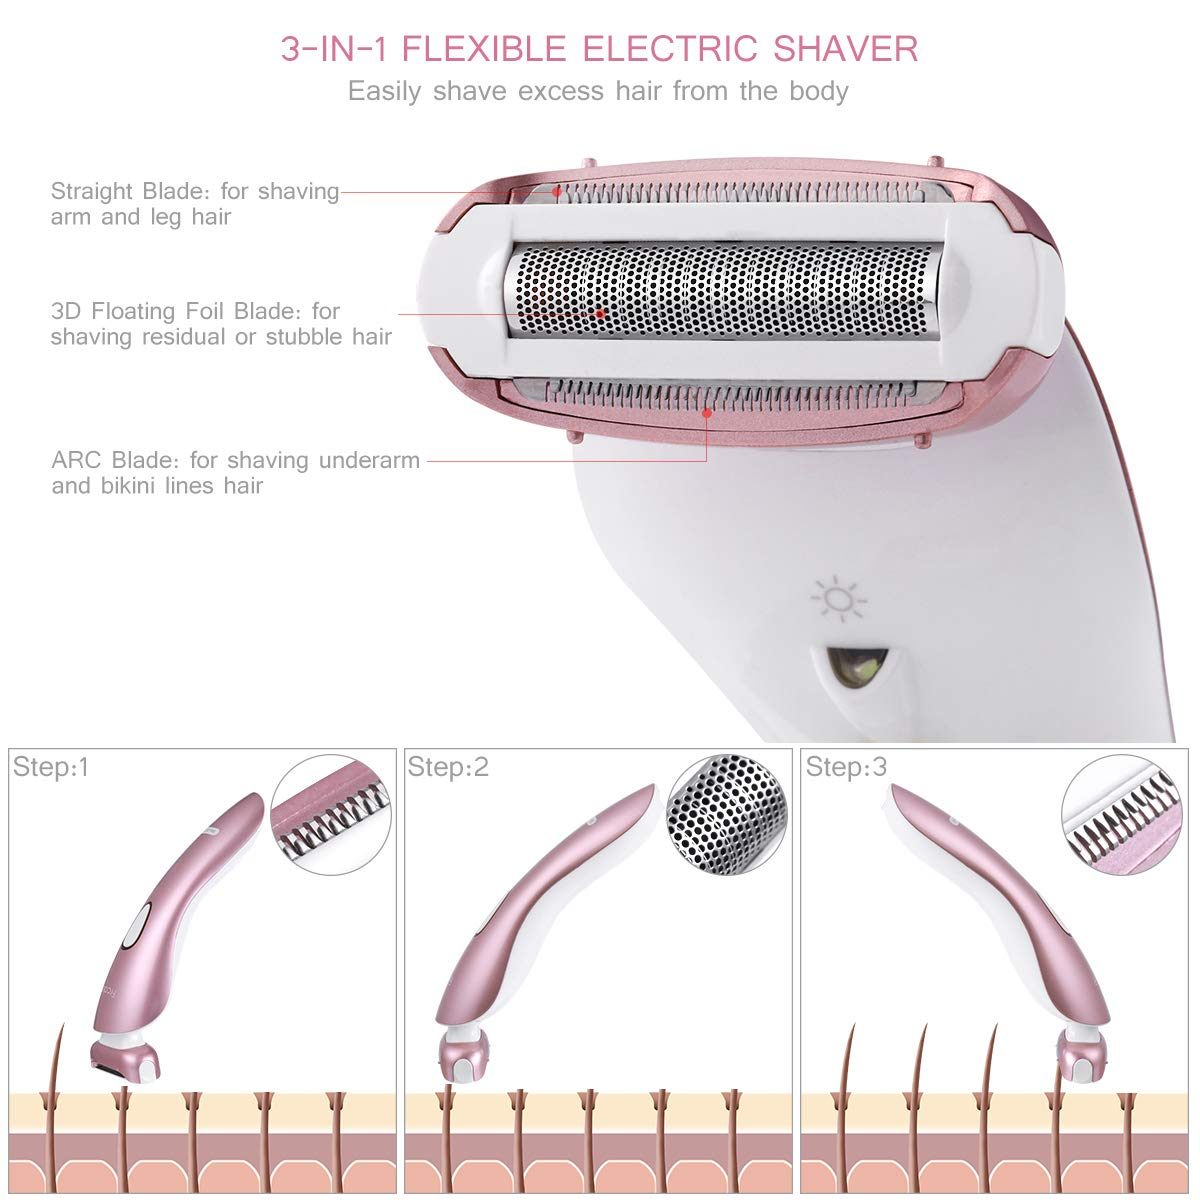 3 In 1 Ladies Electric Razors, Women's Electric Shaver Body Hair Removal Epilator